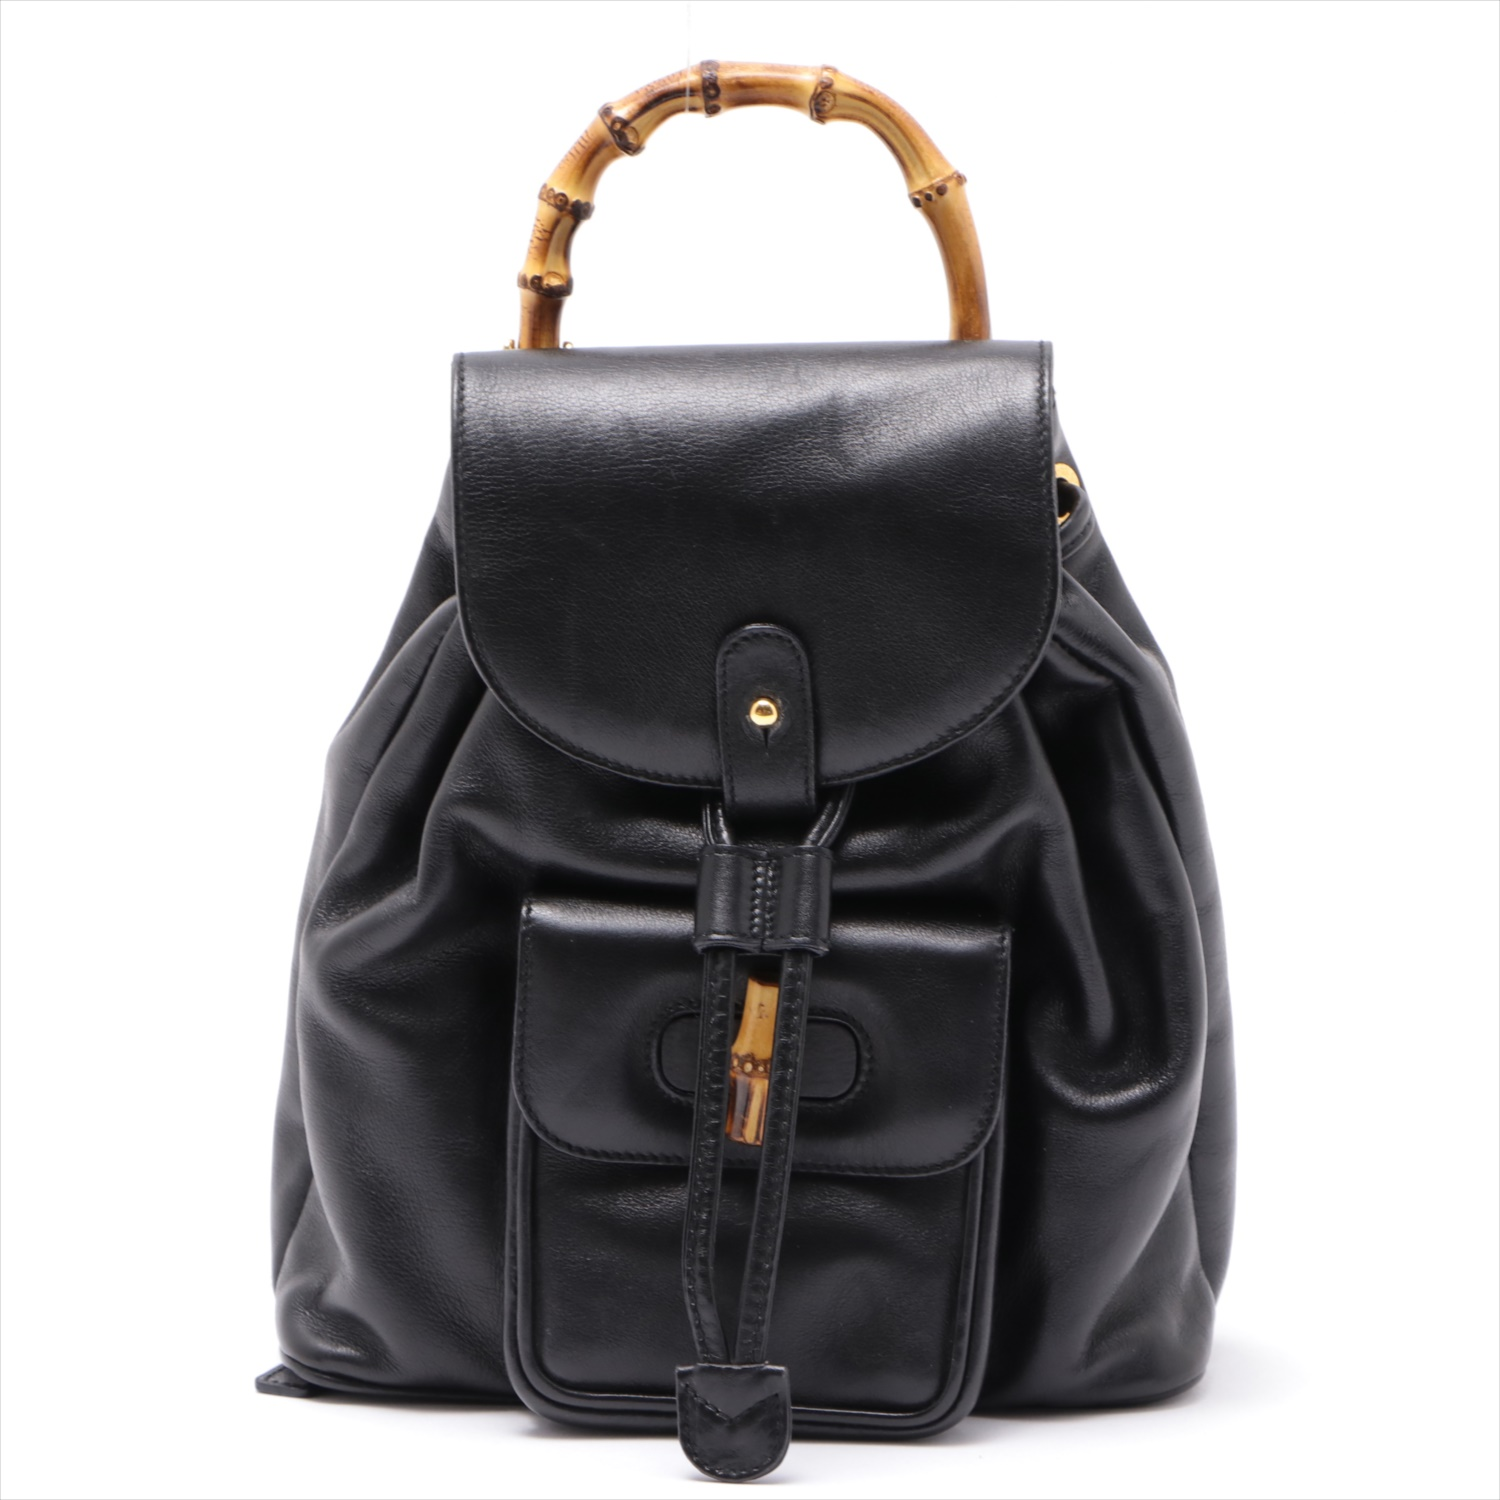 [Used goods] Gucci Bamboo vintage leather backpack black